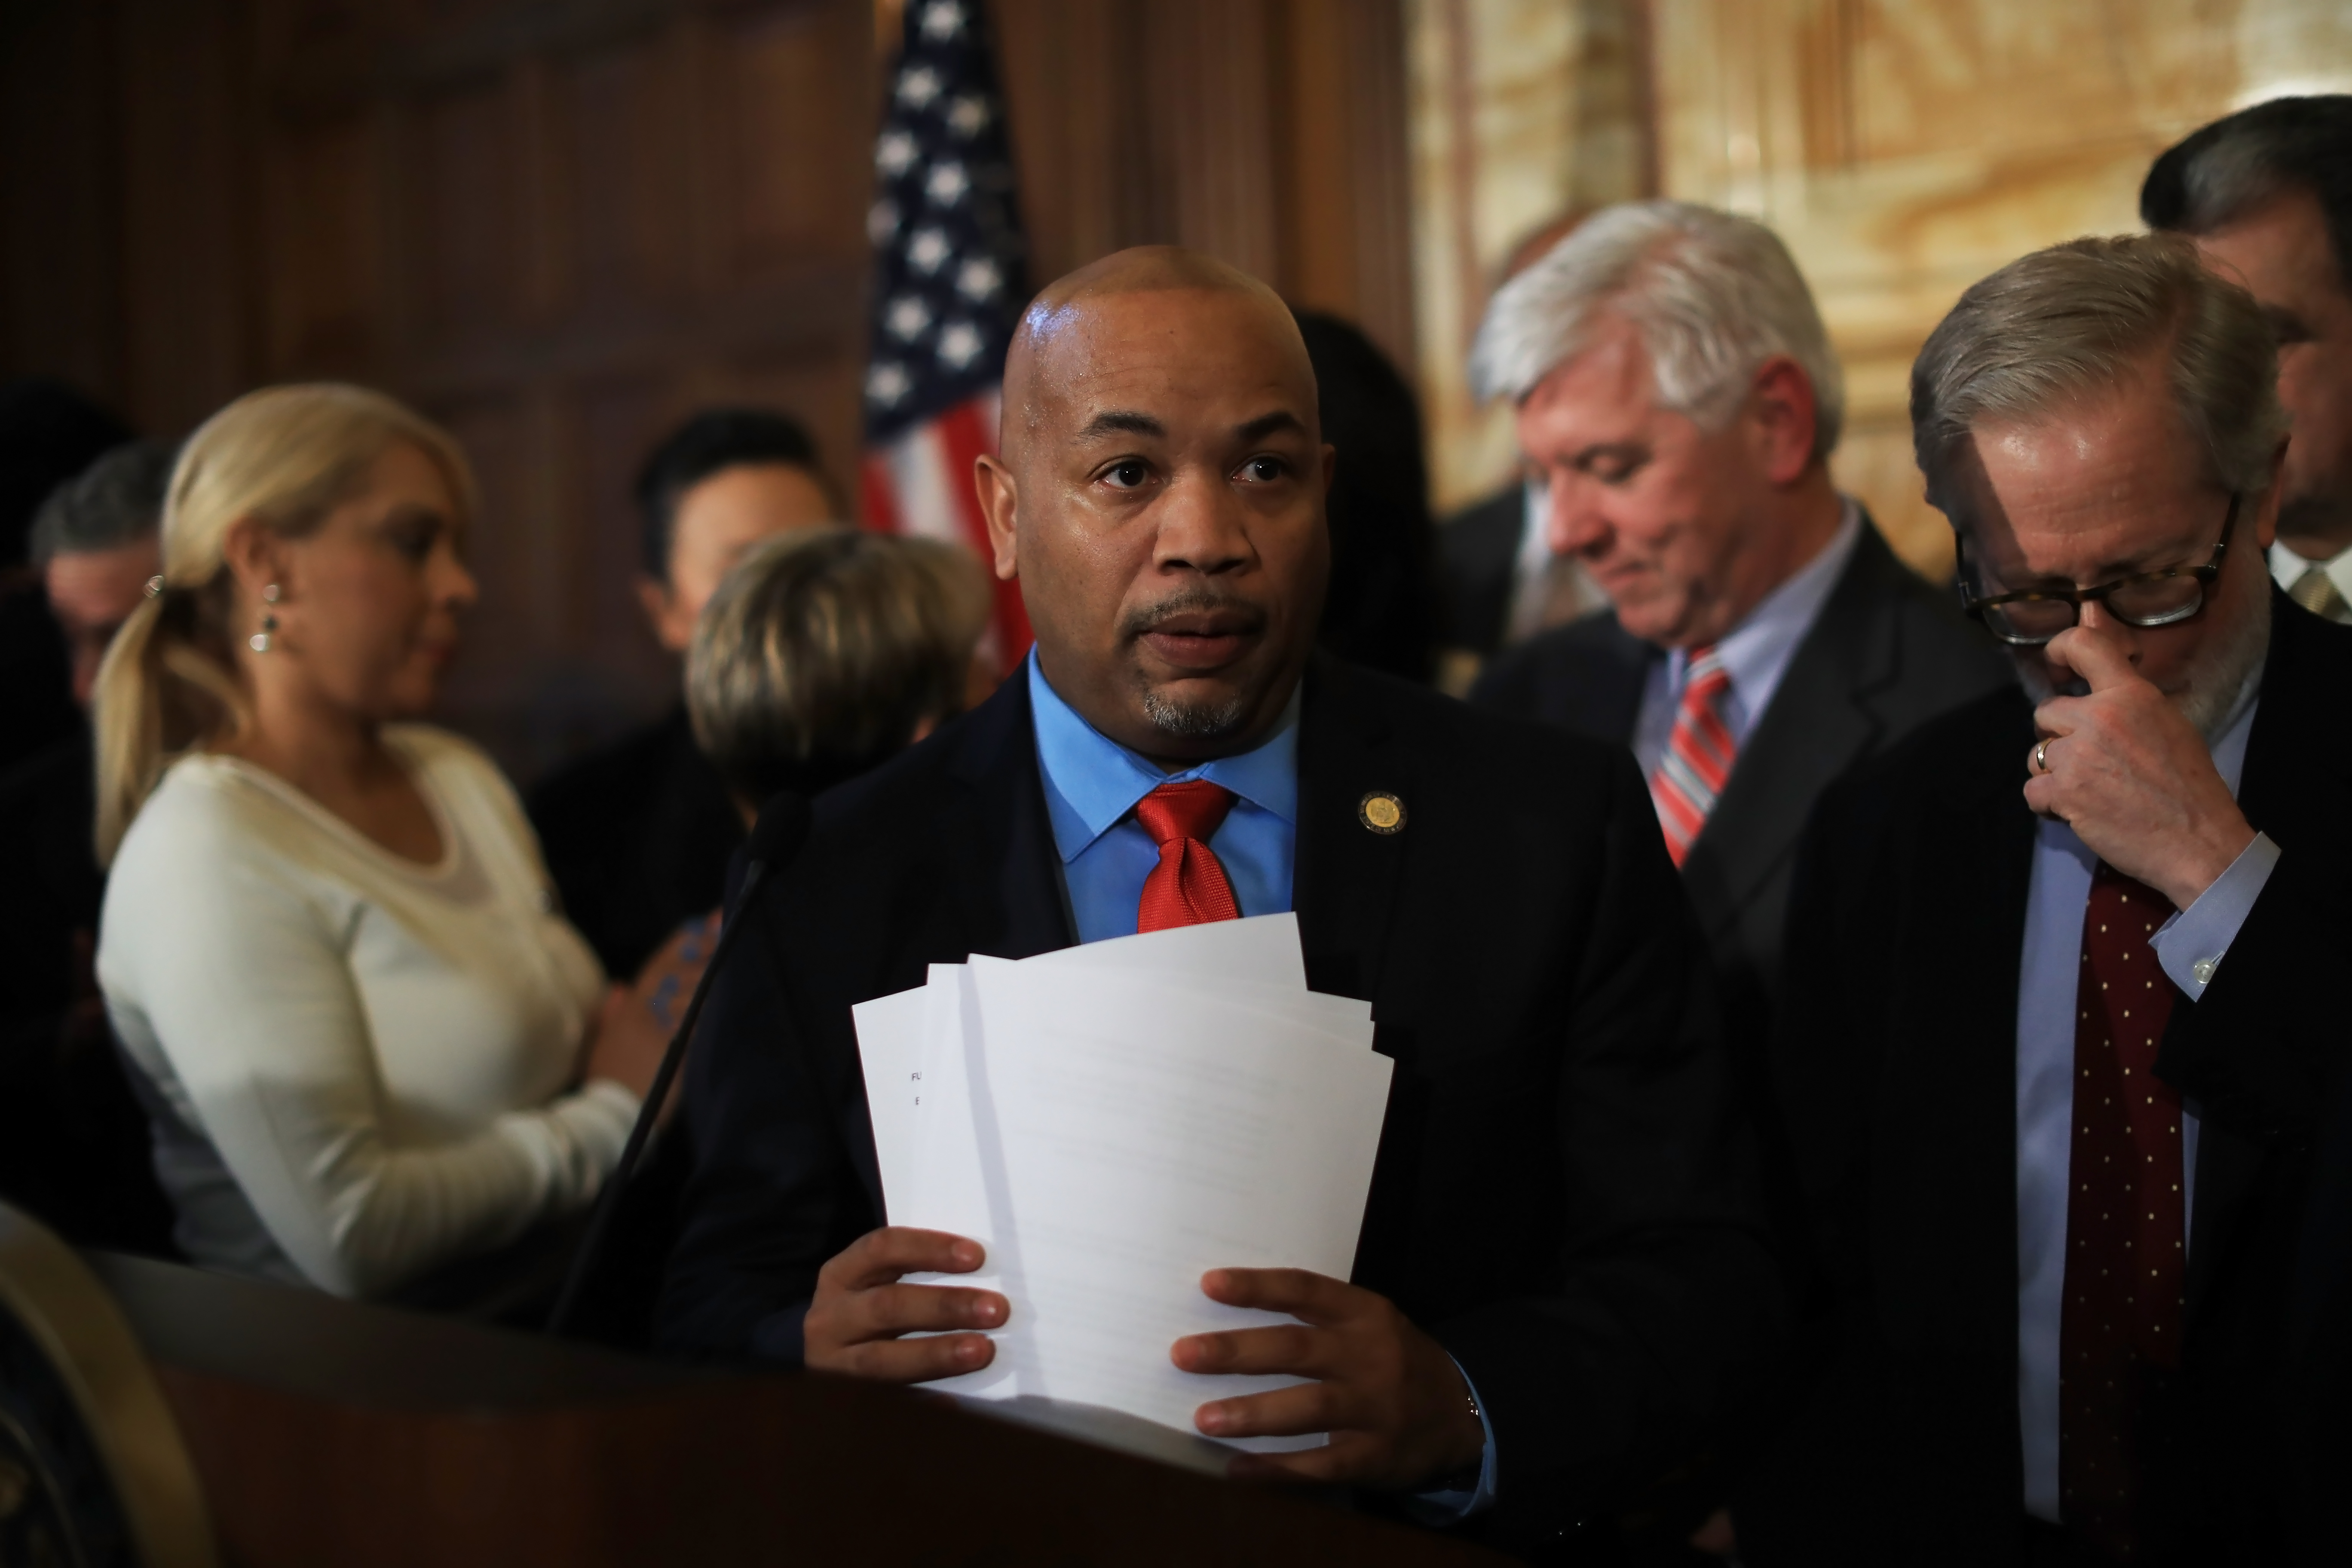 """We'll see what happens. Some make it, and some don't, but that will all be determined over the next two weeks,'' Assembly Speaker Carl Heastie said.(Nathaniel Brooks/The New York Times)"